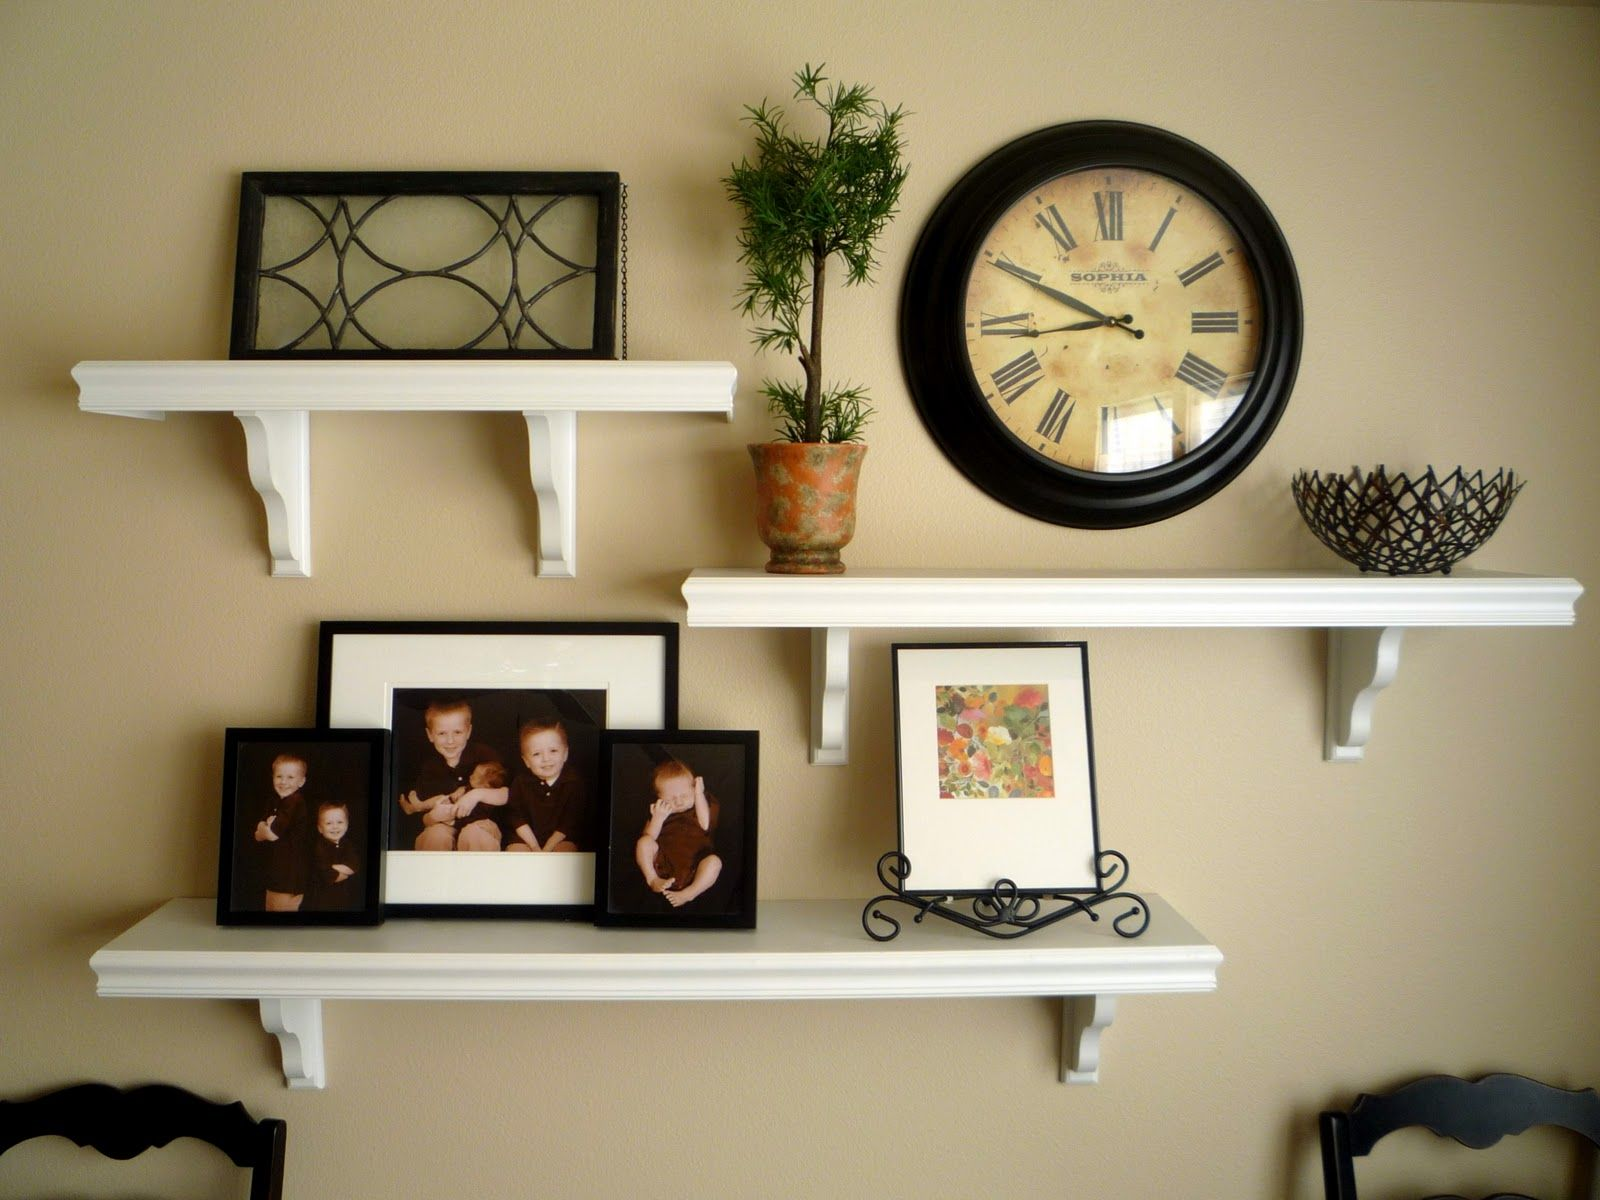 Best 25+ Small Wall Shelf Ideas On Pinterest | Decorating Wall Shelves,  Farmhouse Wall Mirrors And Living Room Decorations